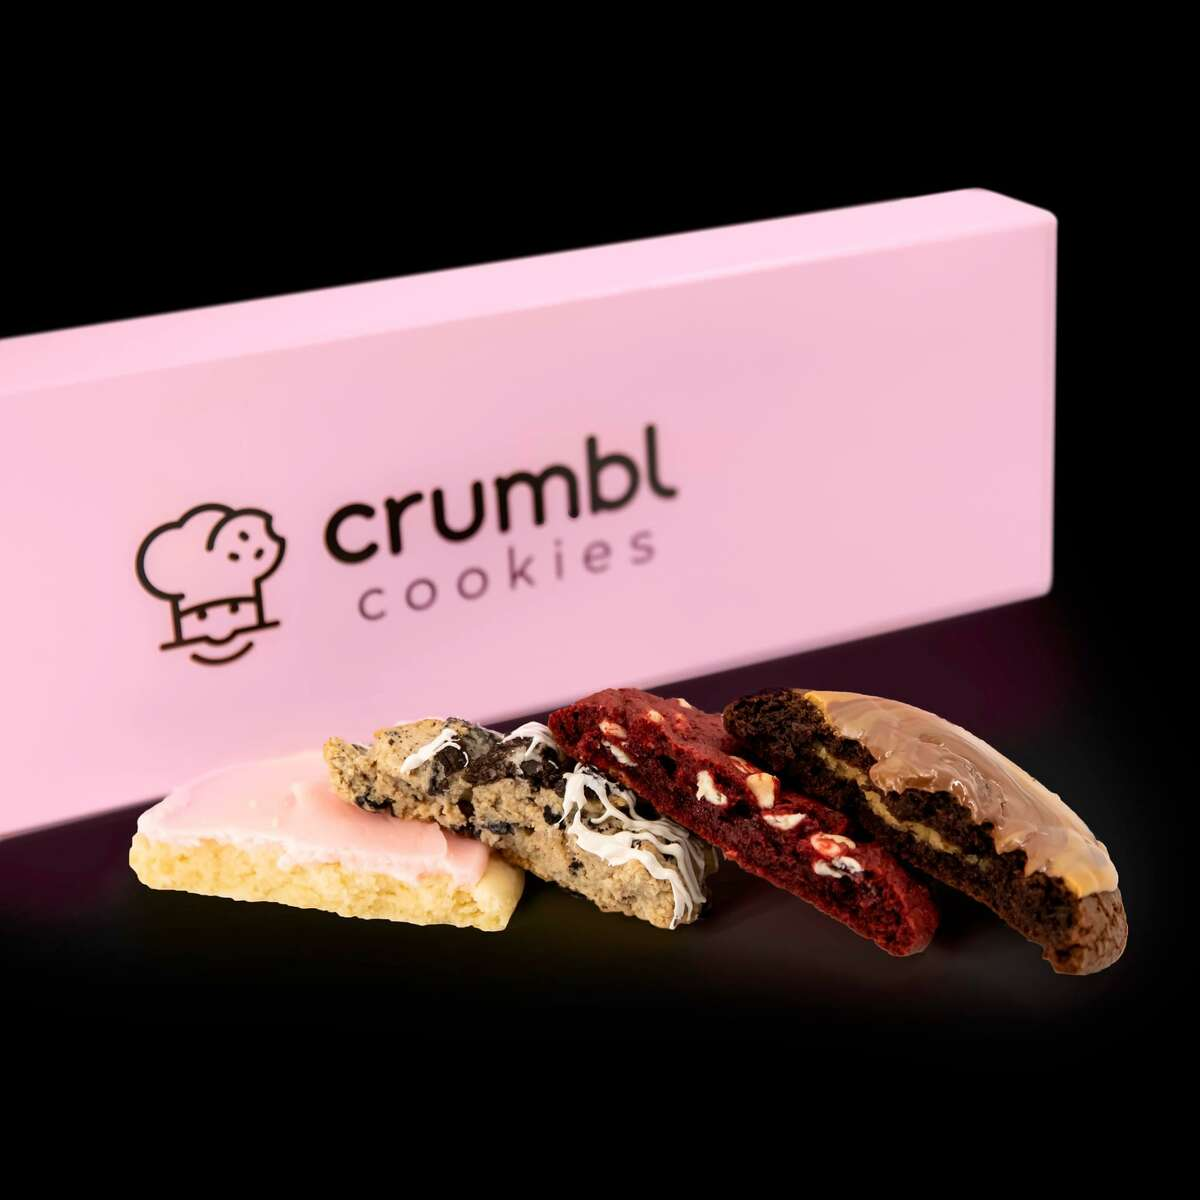 With its grand opening scheduled for June 24, Crumbl Cookies is ready for its Pasadena debut.